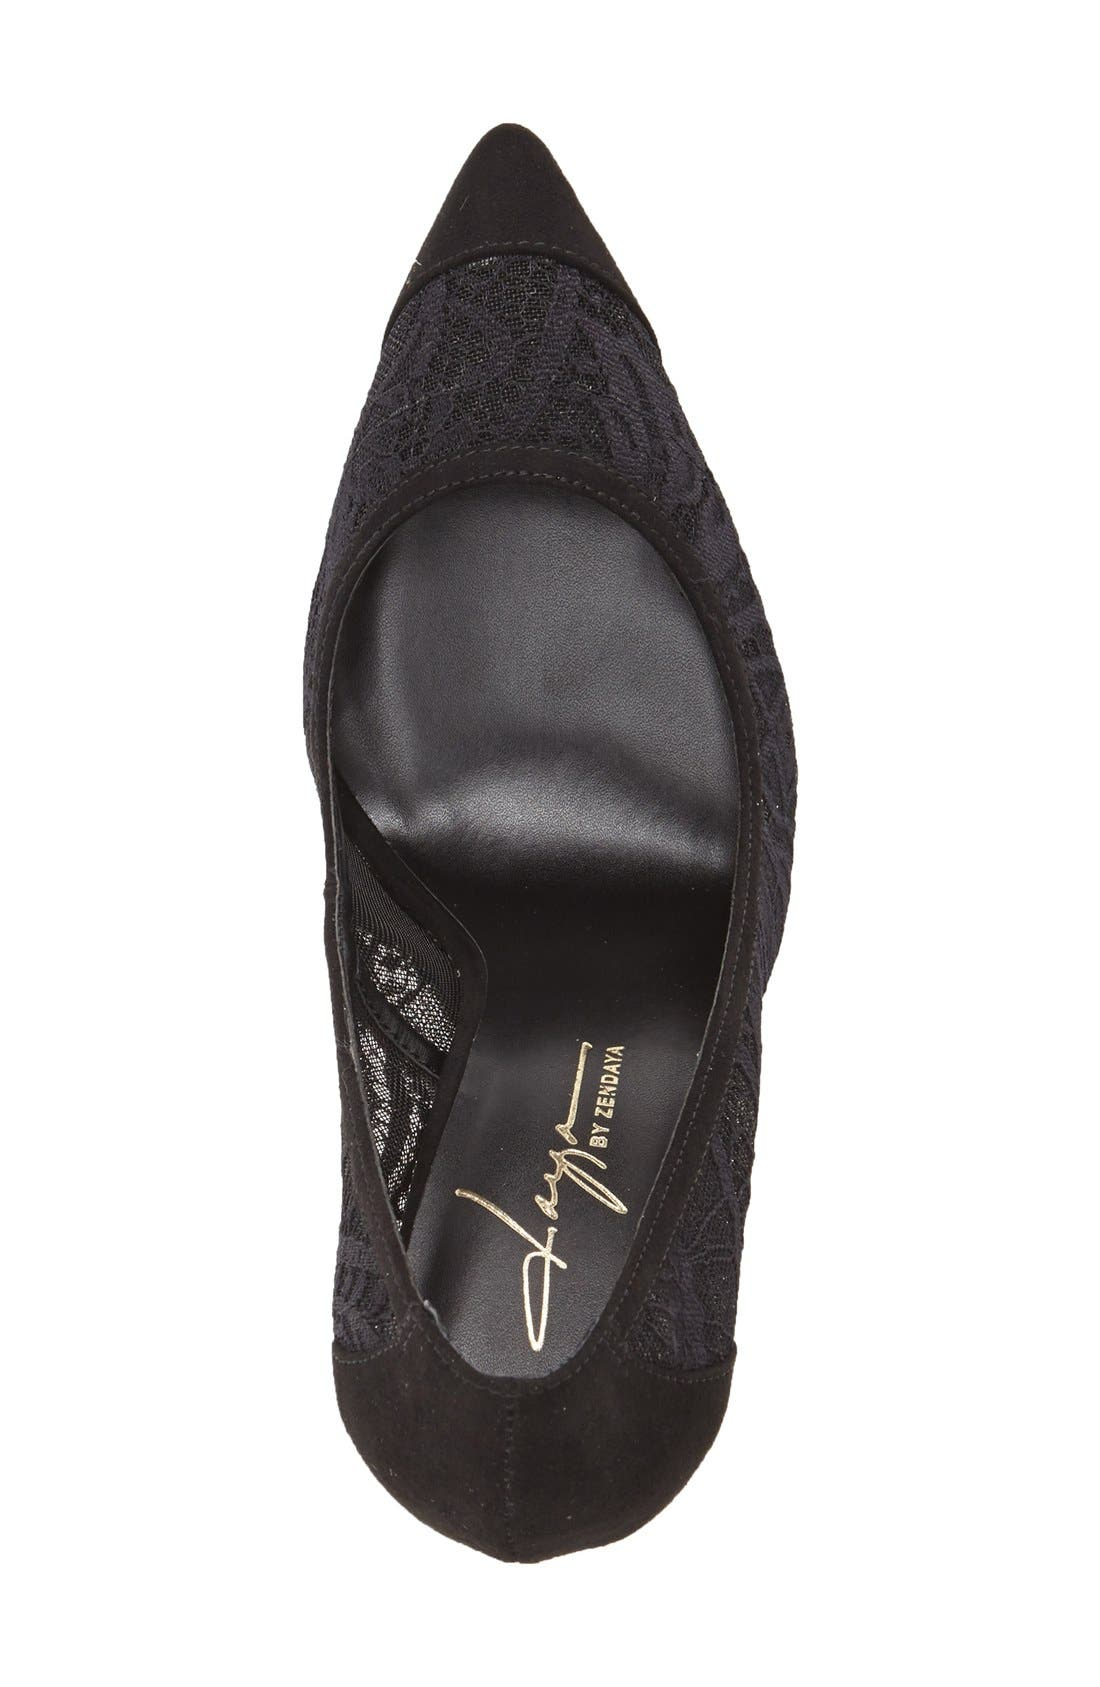 by Zendaya 'Annabelle' Pointy Toe Pump,                             Alternate thumbnail 3, color,                             Black Lace Fabric